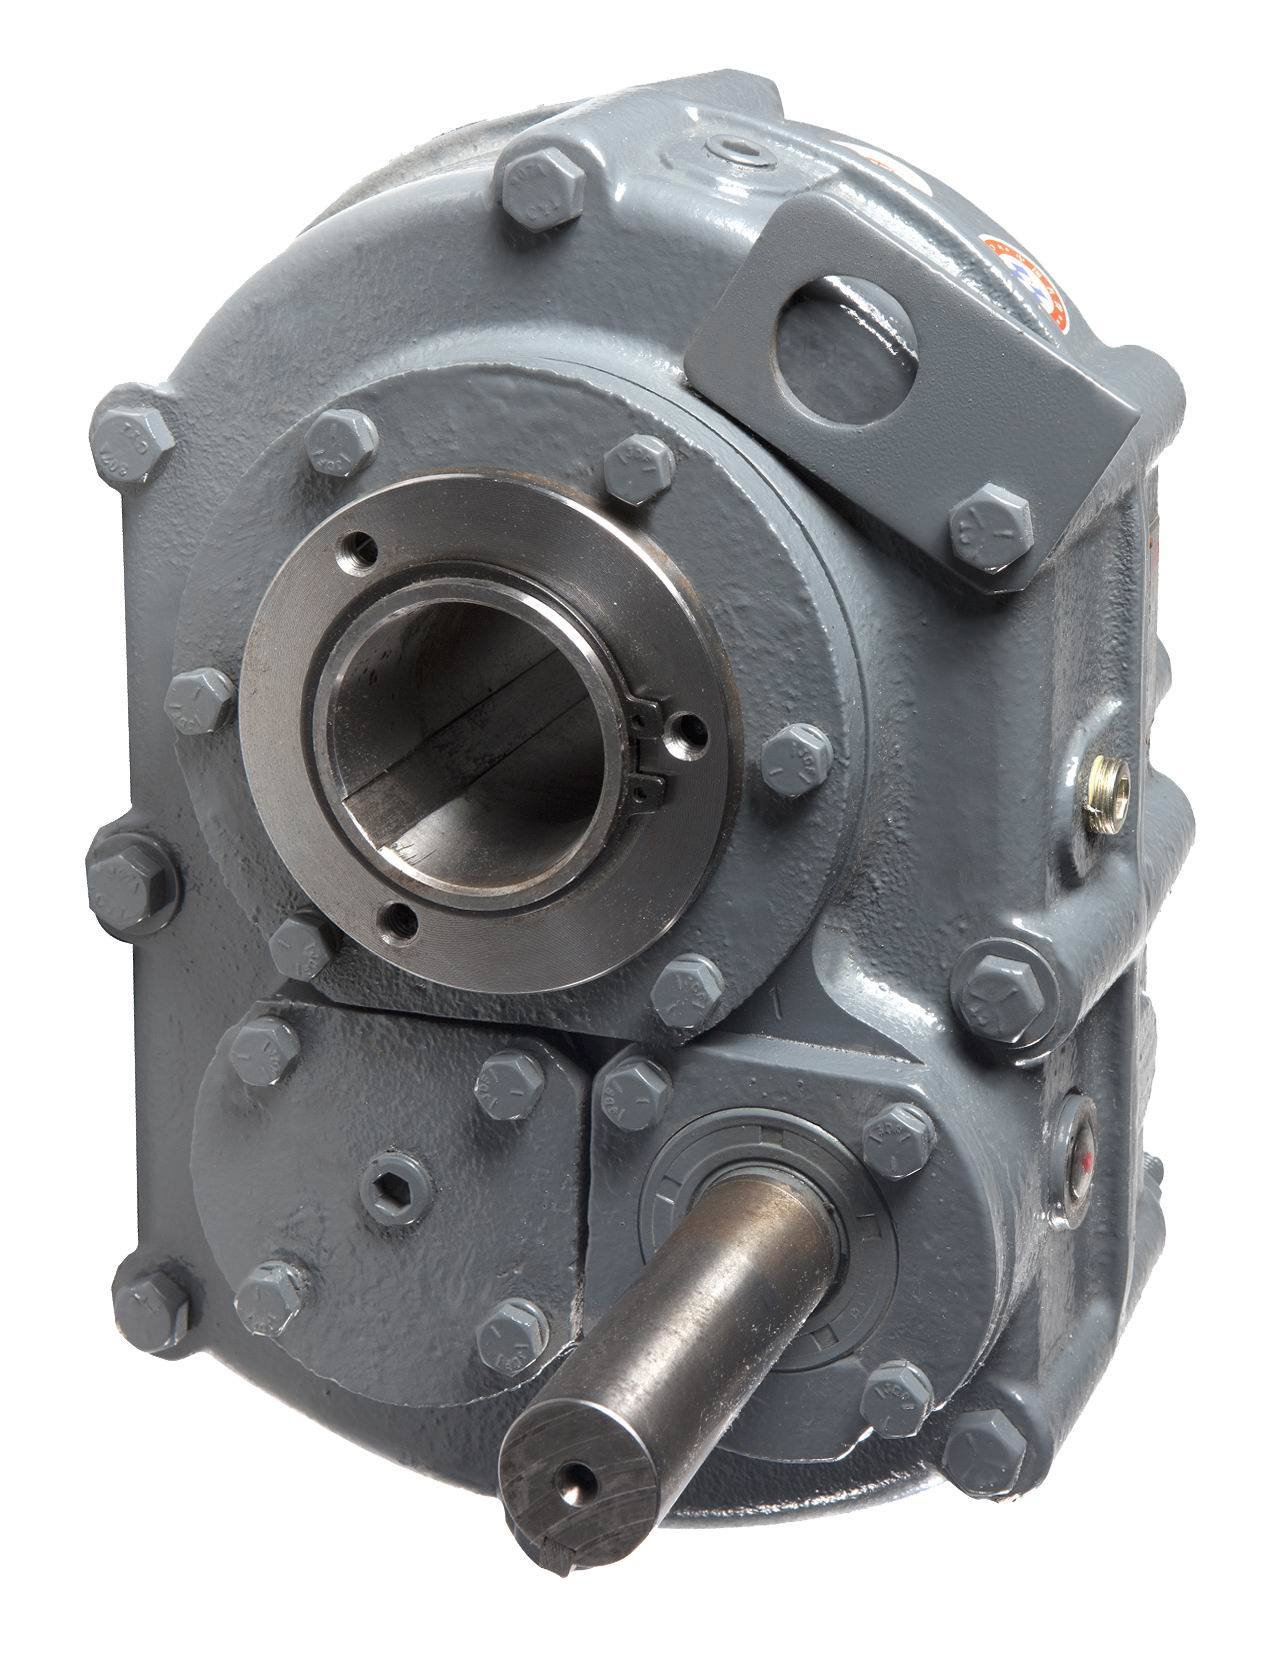 TXT (SMRY) 2-9 Shaft Mounted Reducer Gearbox Gear Reducer